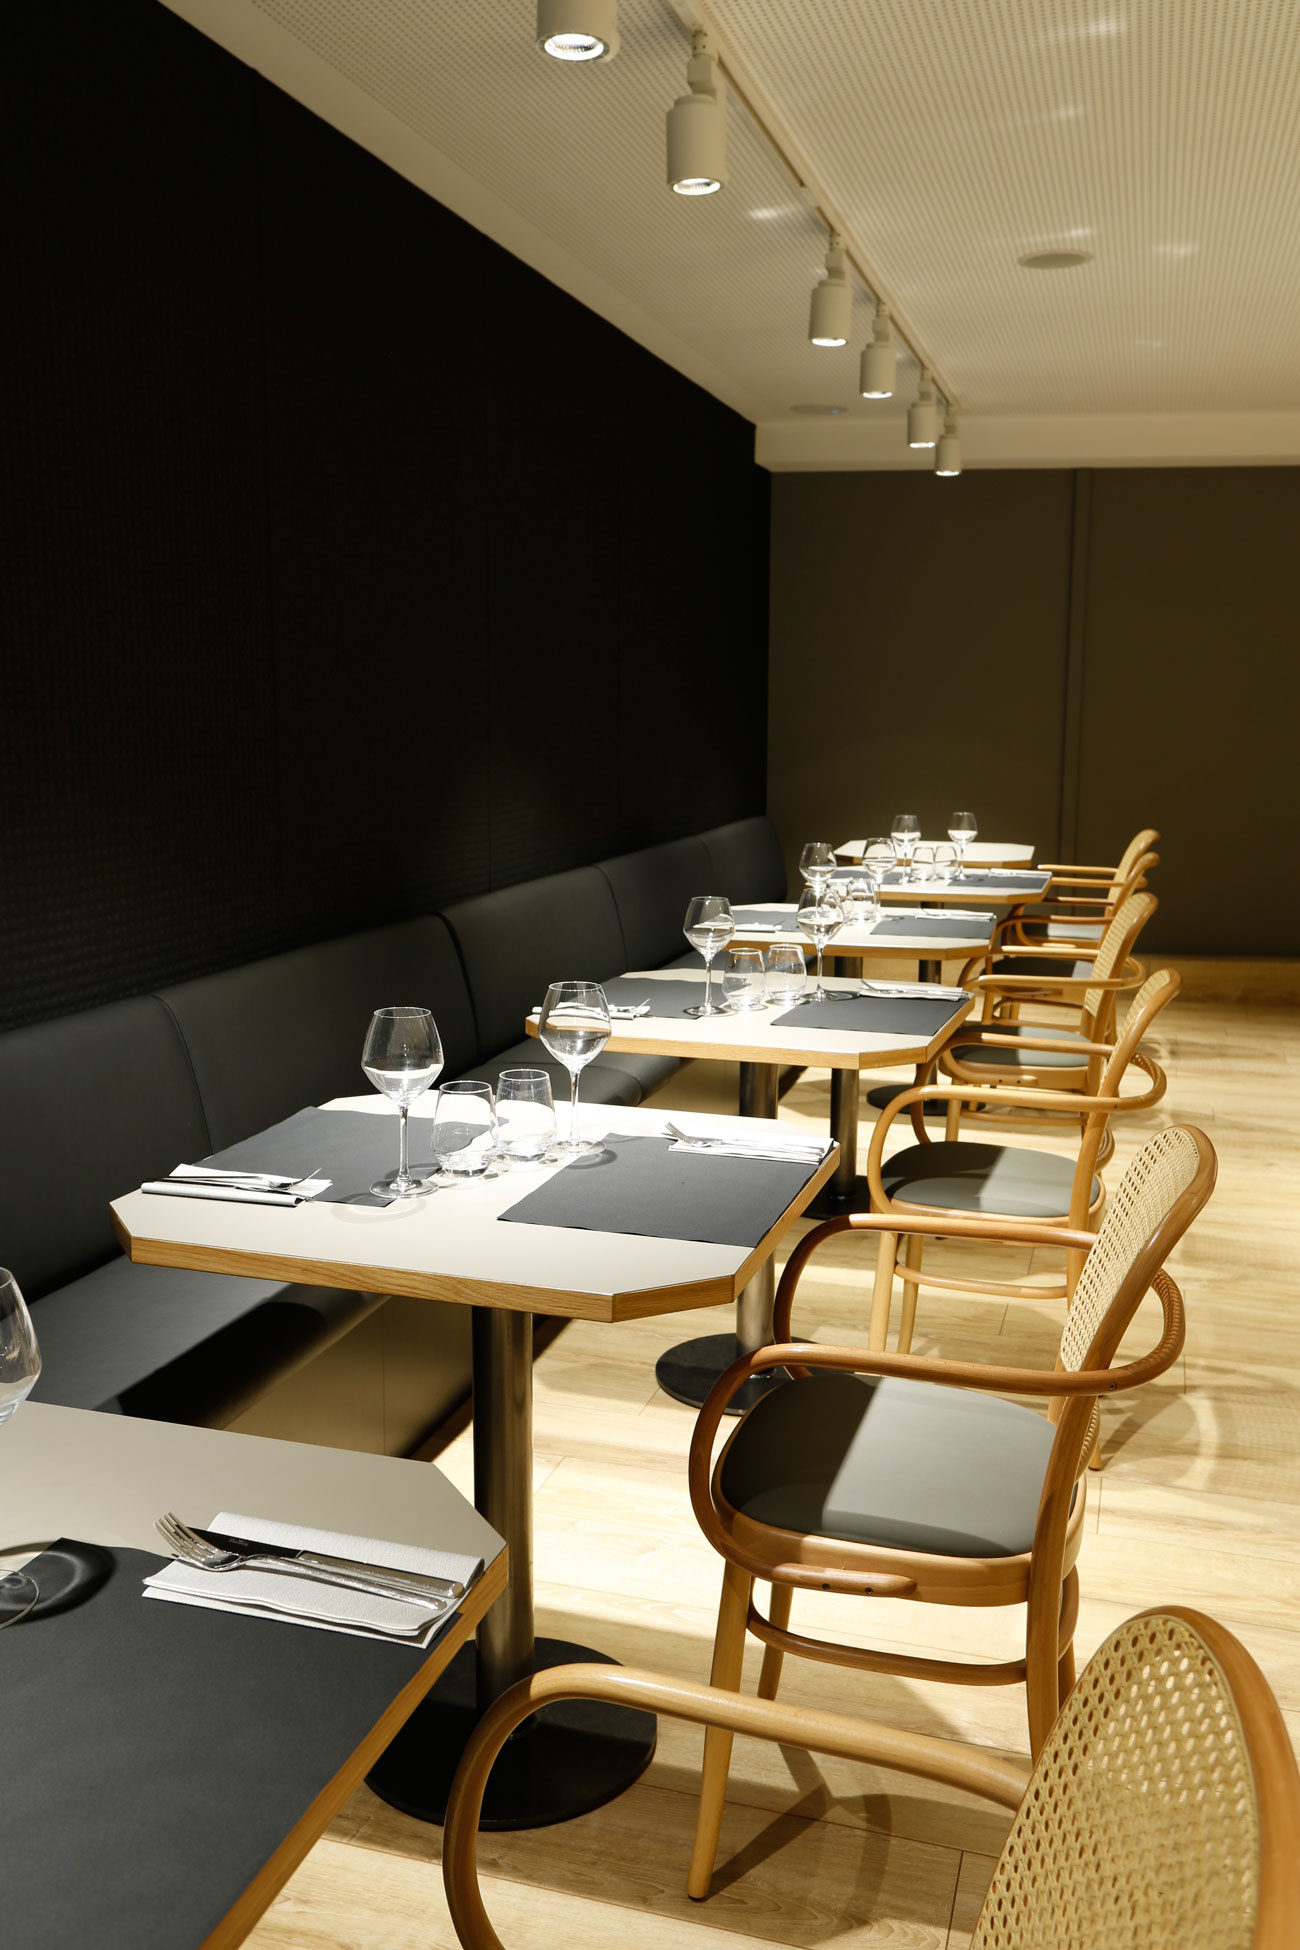 restaurant-IT-Barcelona-mobiliari-Silleria-Verges-6